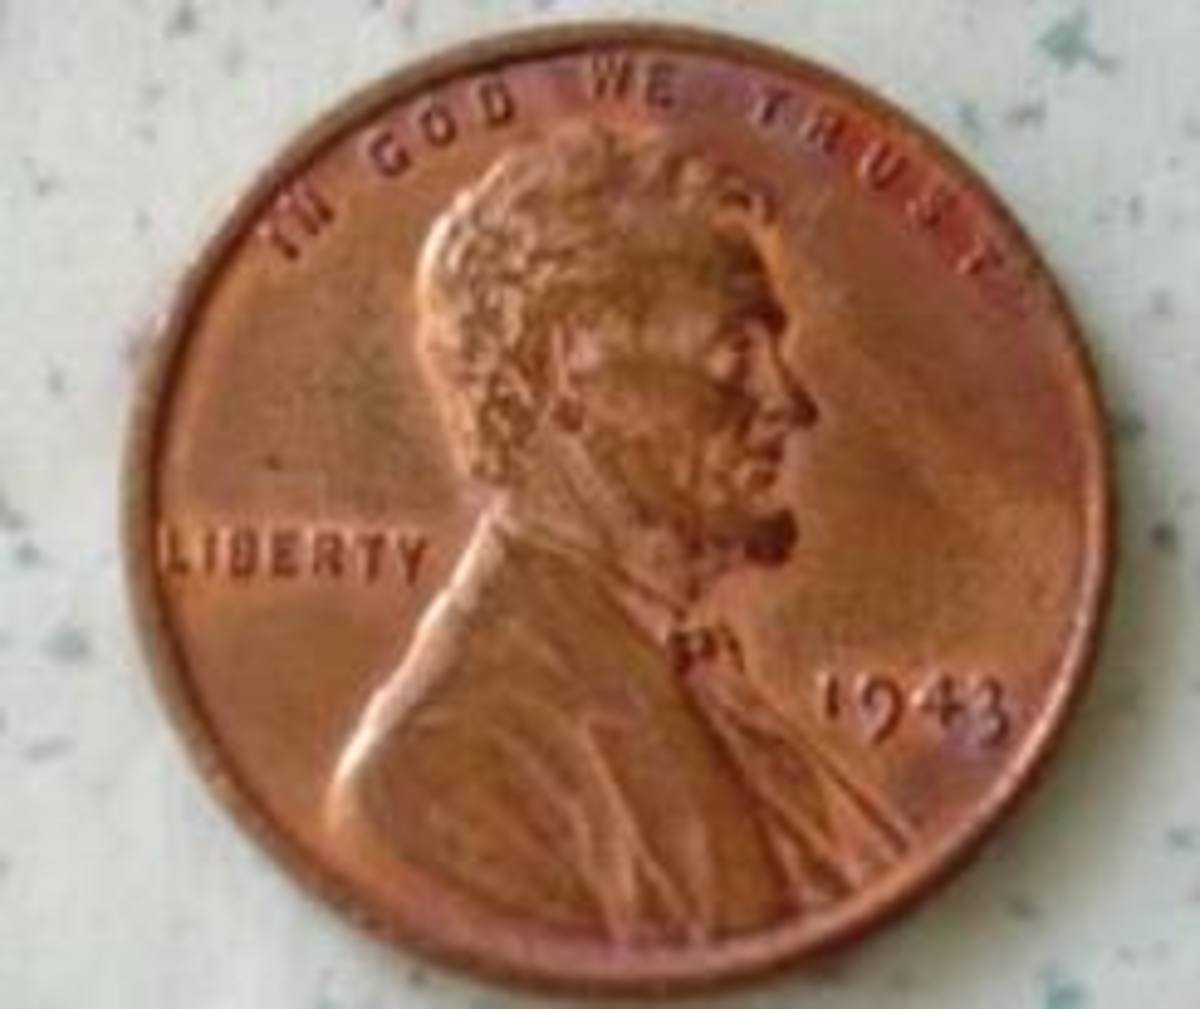 1943 Copper Penny Facts And Values-Rare American Pennies